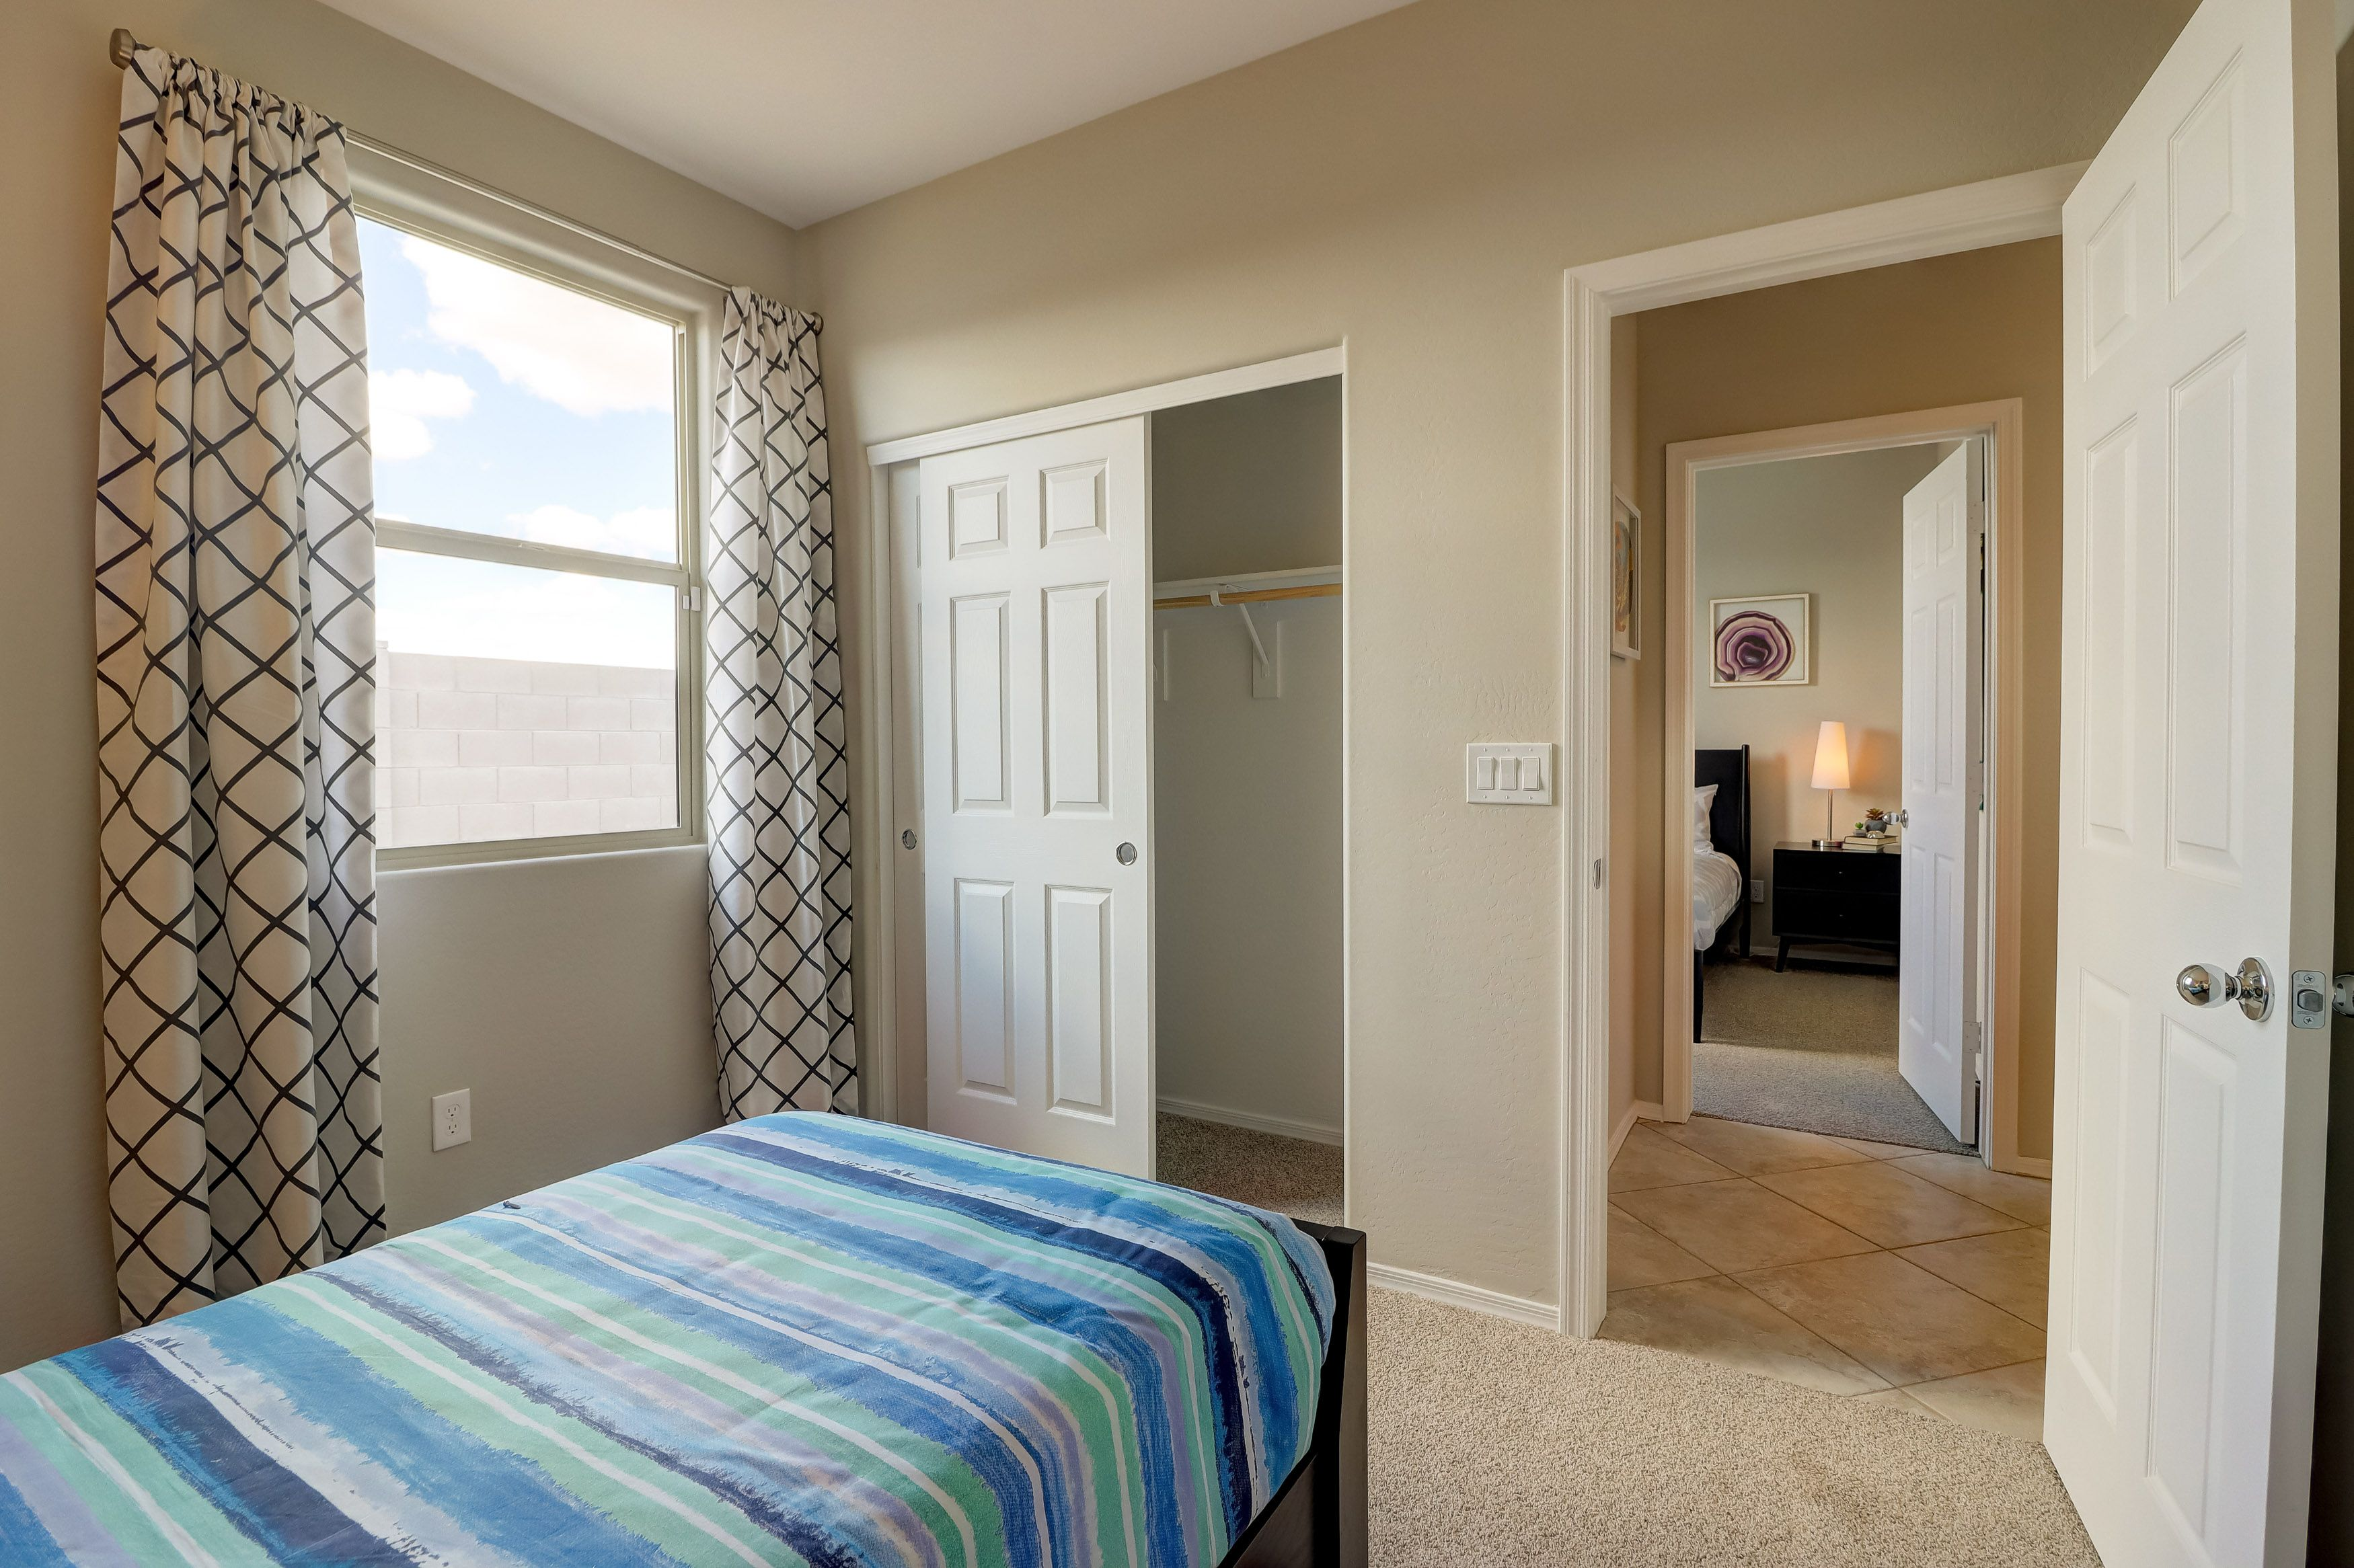 Bedroom featured in the Madera By Landsea Homes in Phoenix-Mesa, AZ